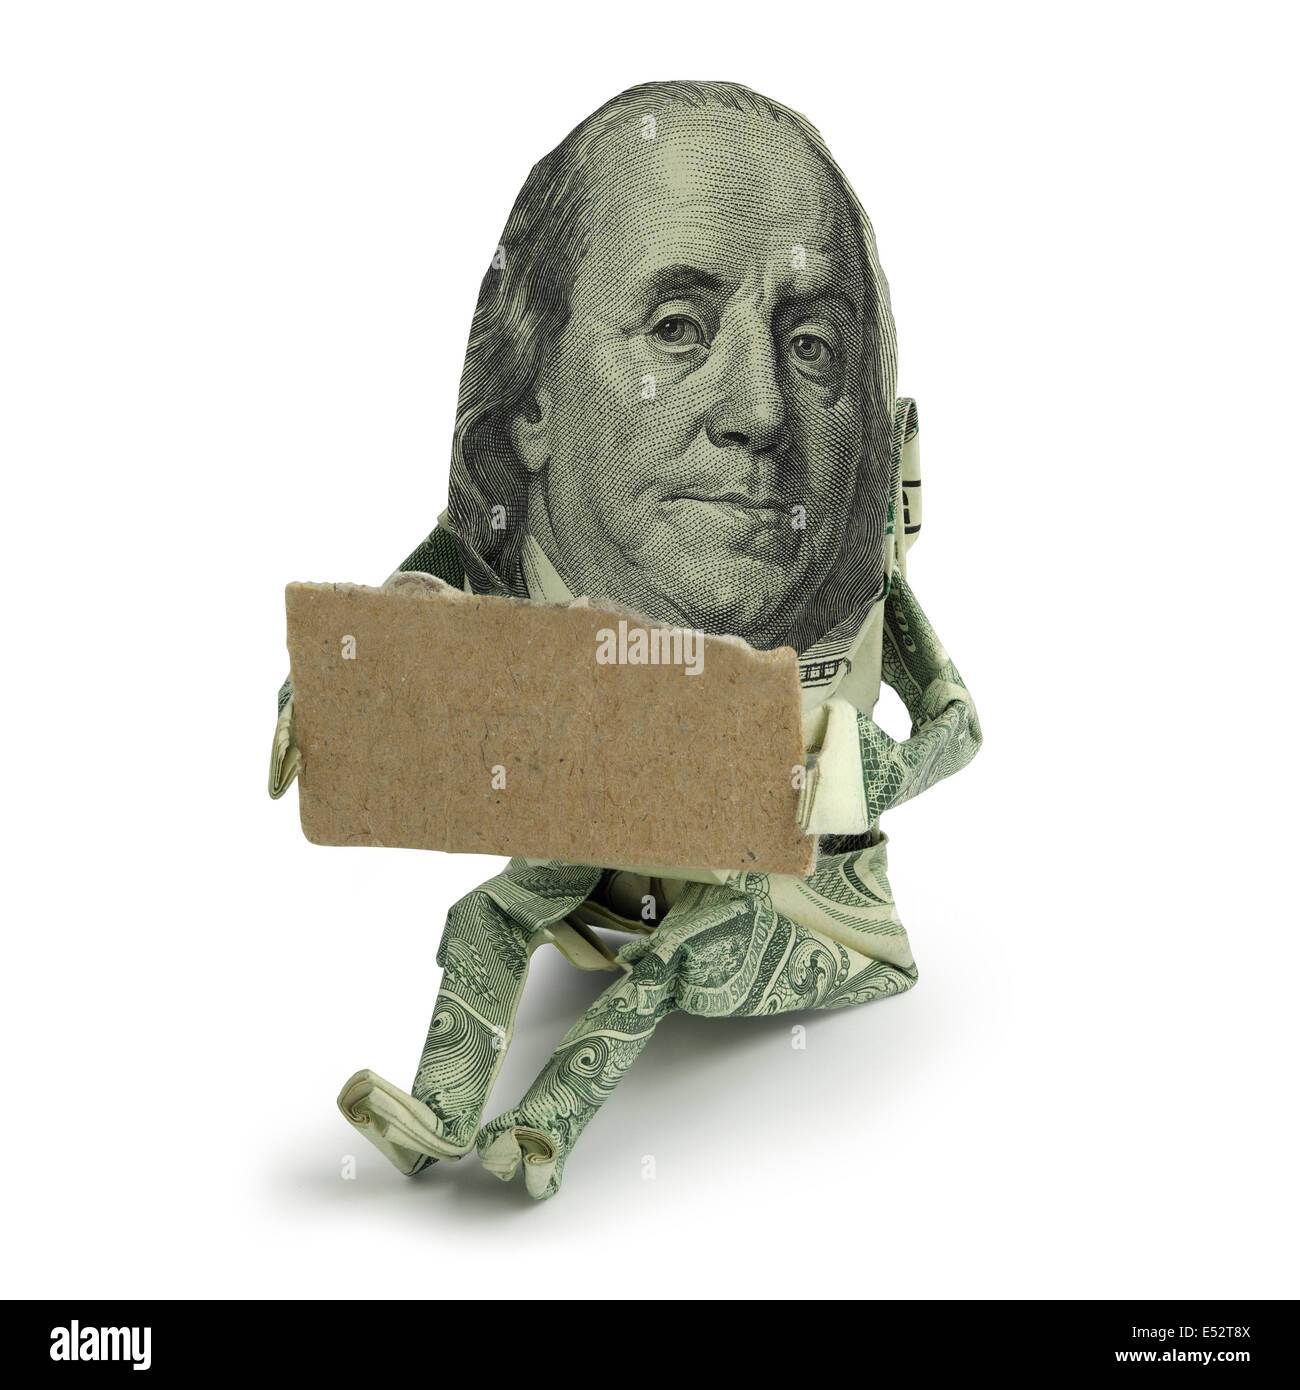 Origami human figure made of U.S. paper currency sitting with a blank cardboard sign held in front of him as if - Stock Image